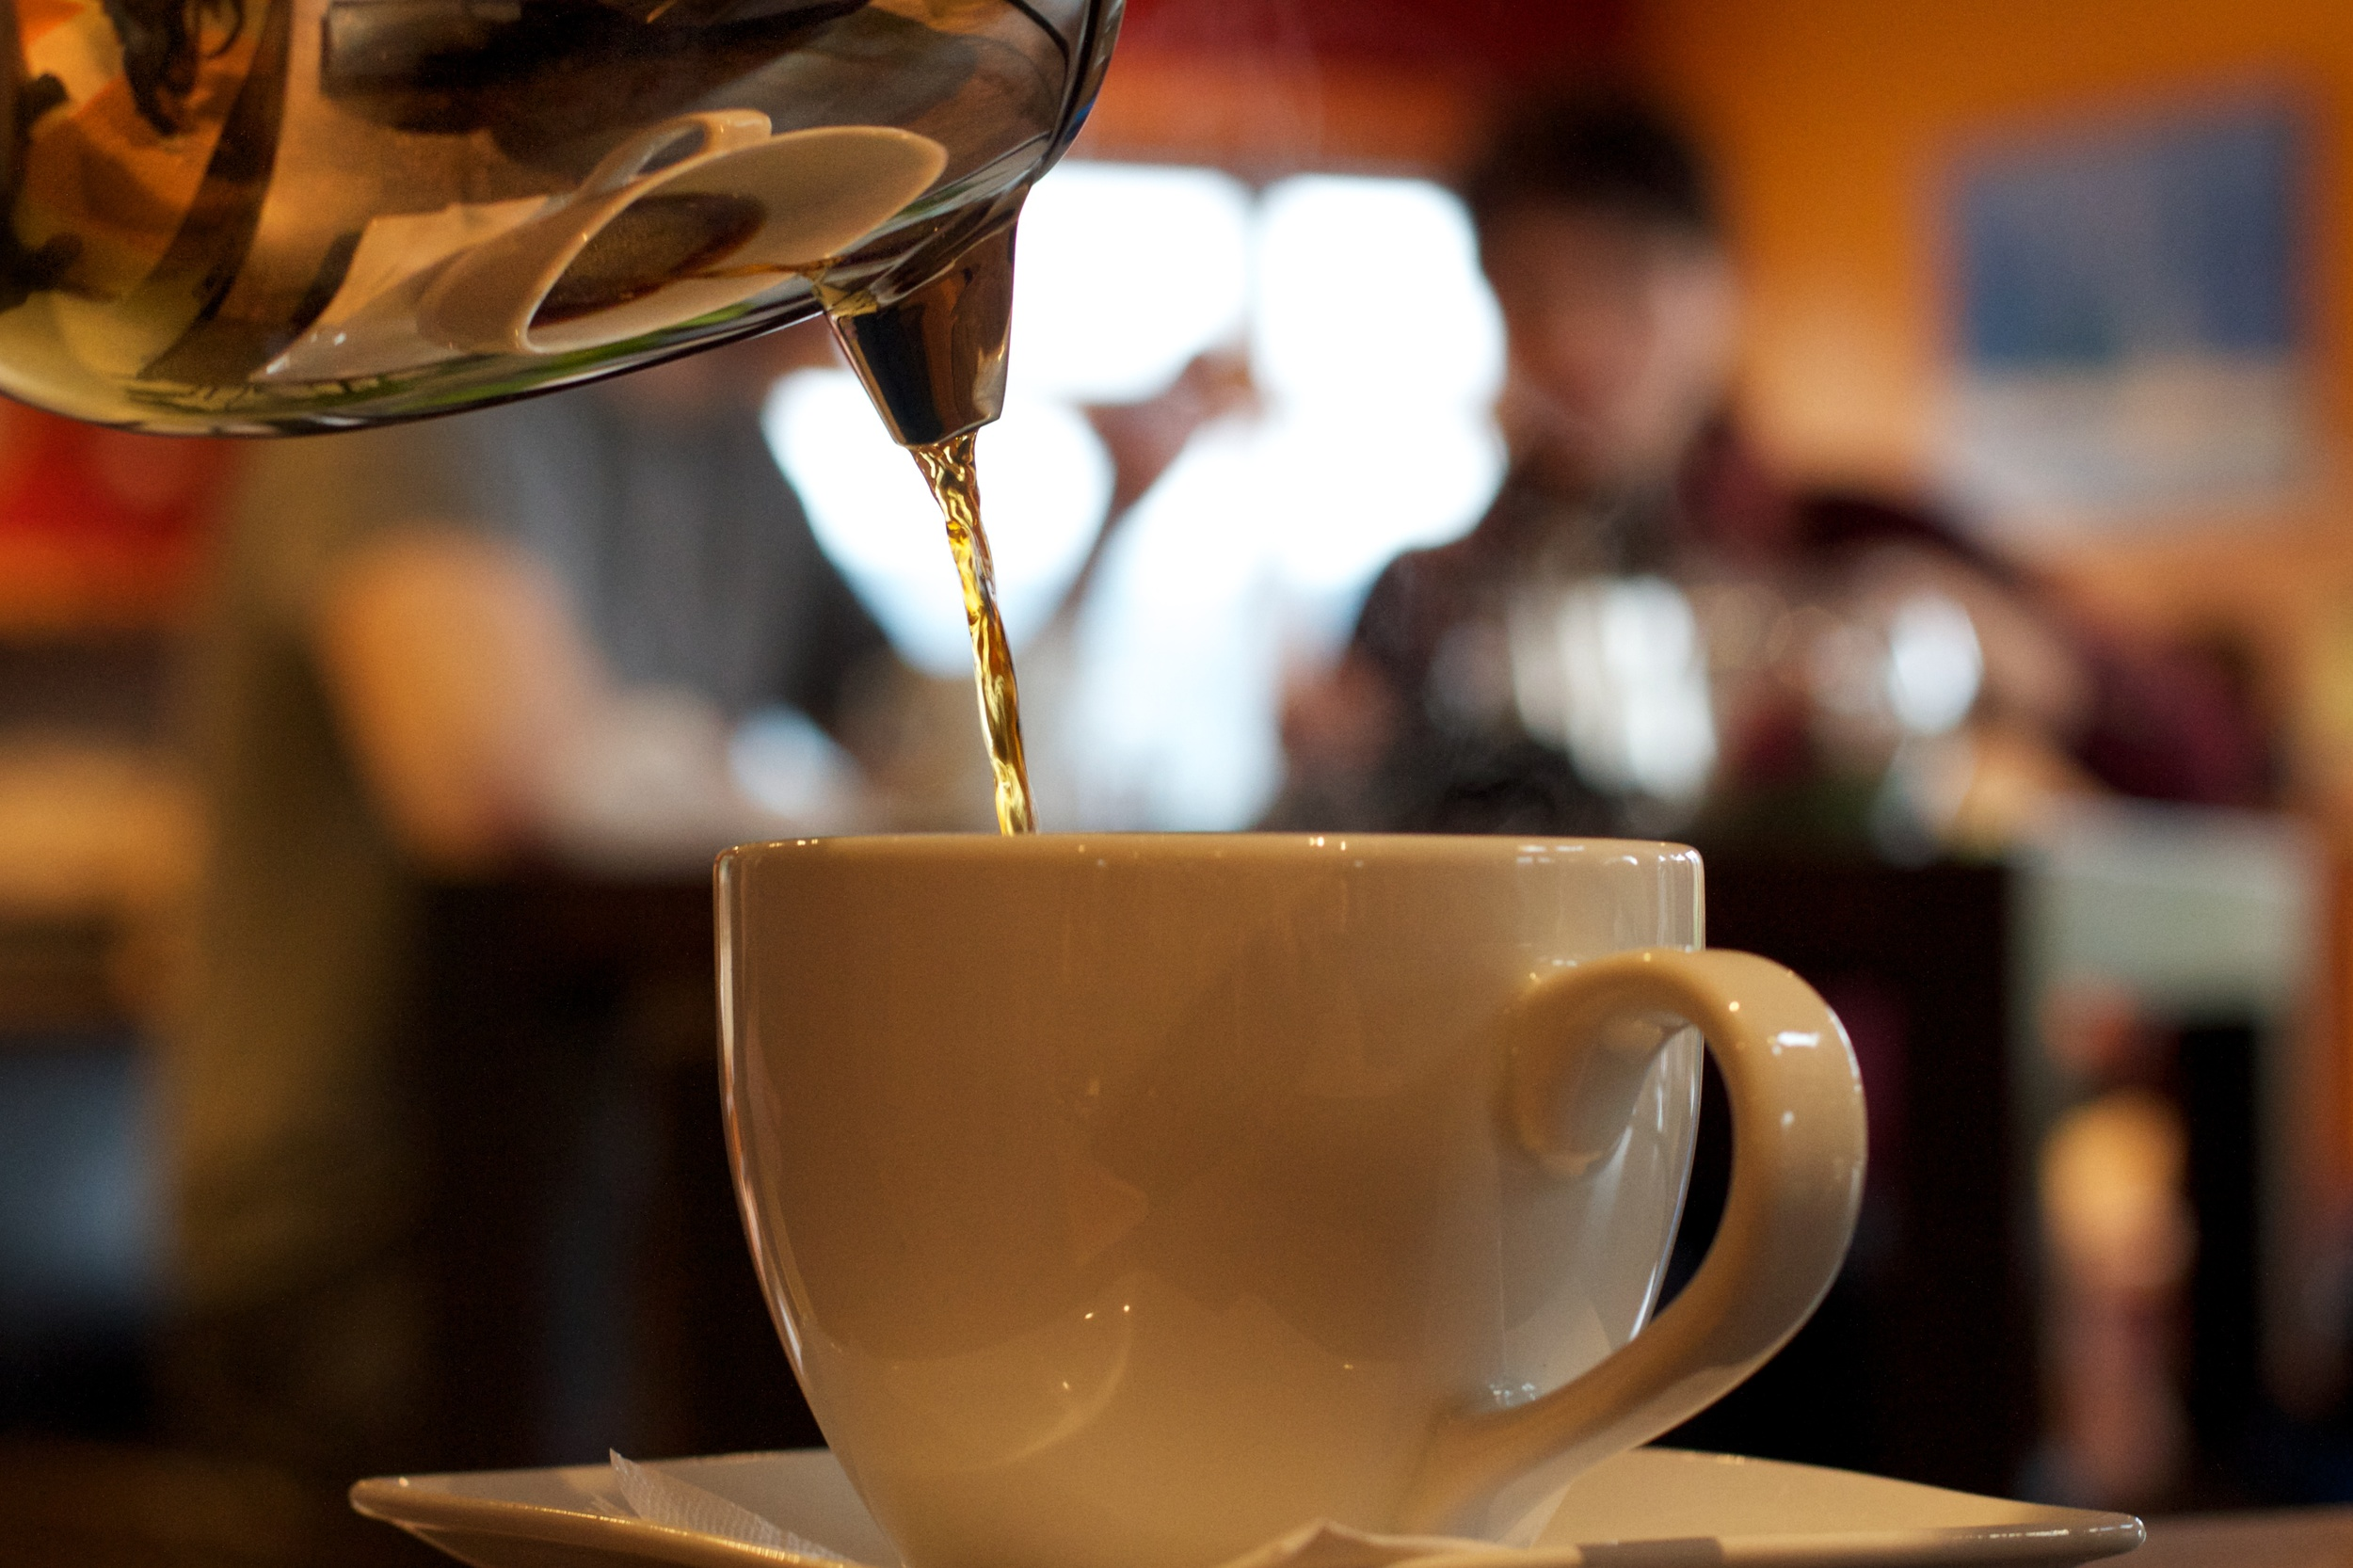 Coffee is poured as friends sit talking in the background.  Canon EOS 7D EF 50mm at f/4 1/60 ISO 1250